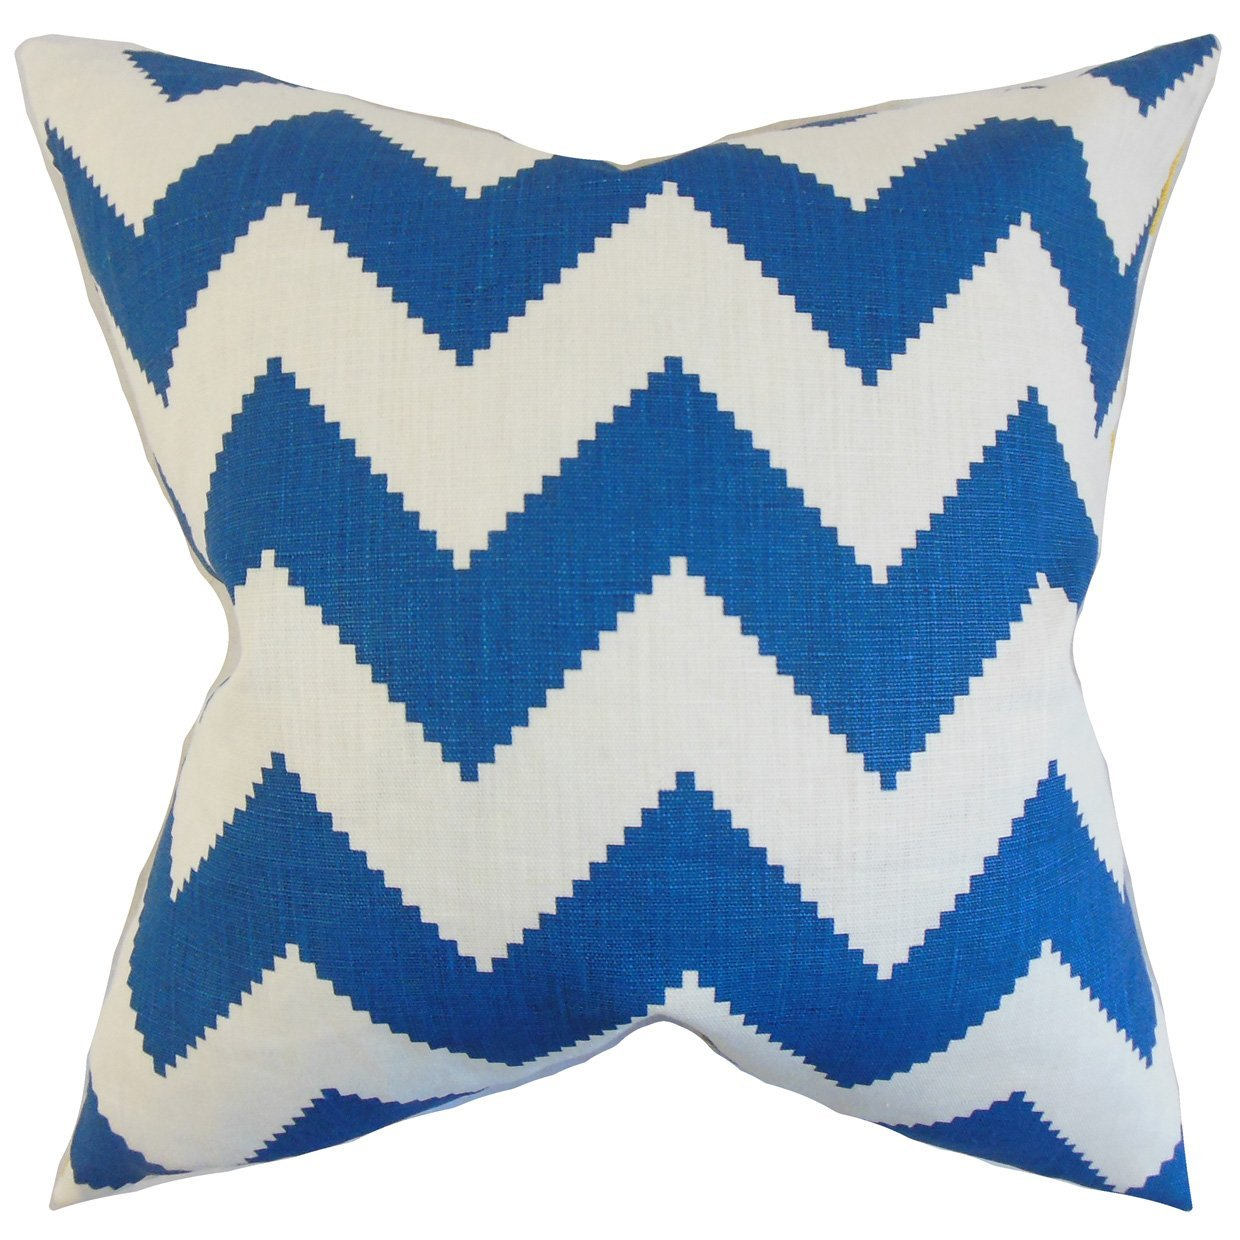 The Pillow Collection Maillol Zigzag Bedding Sham Marine King/20' x 36'